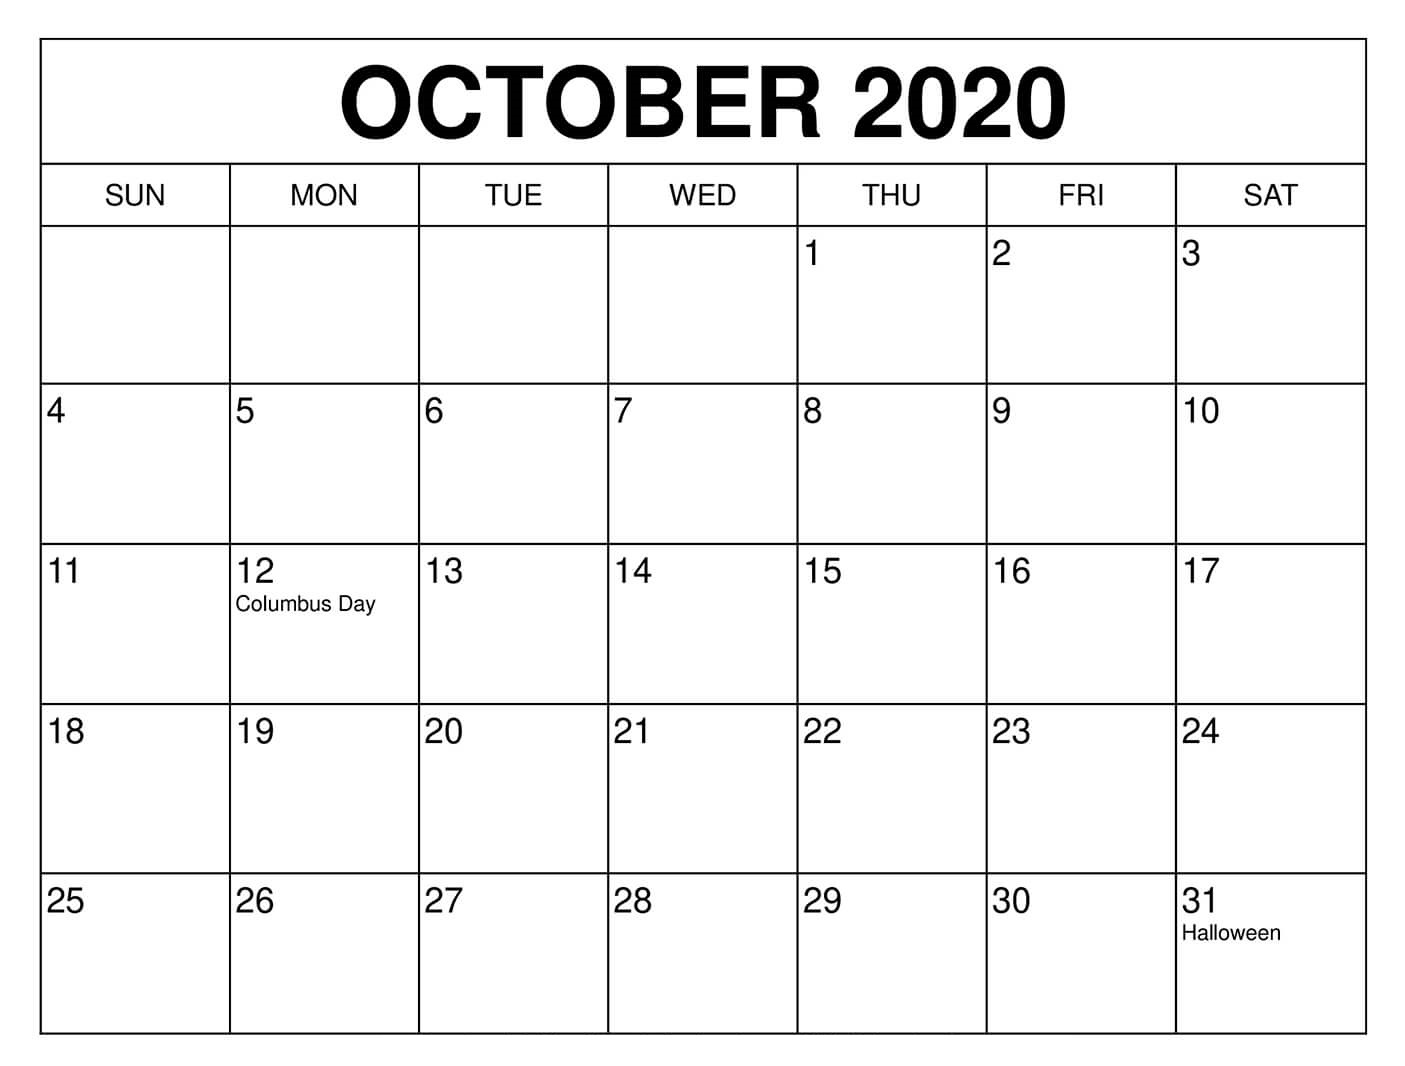 October 2020 Calendar Template Word